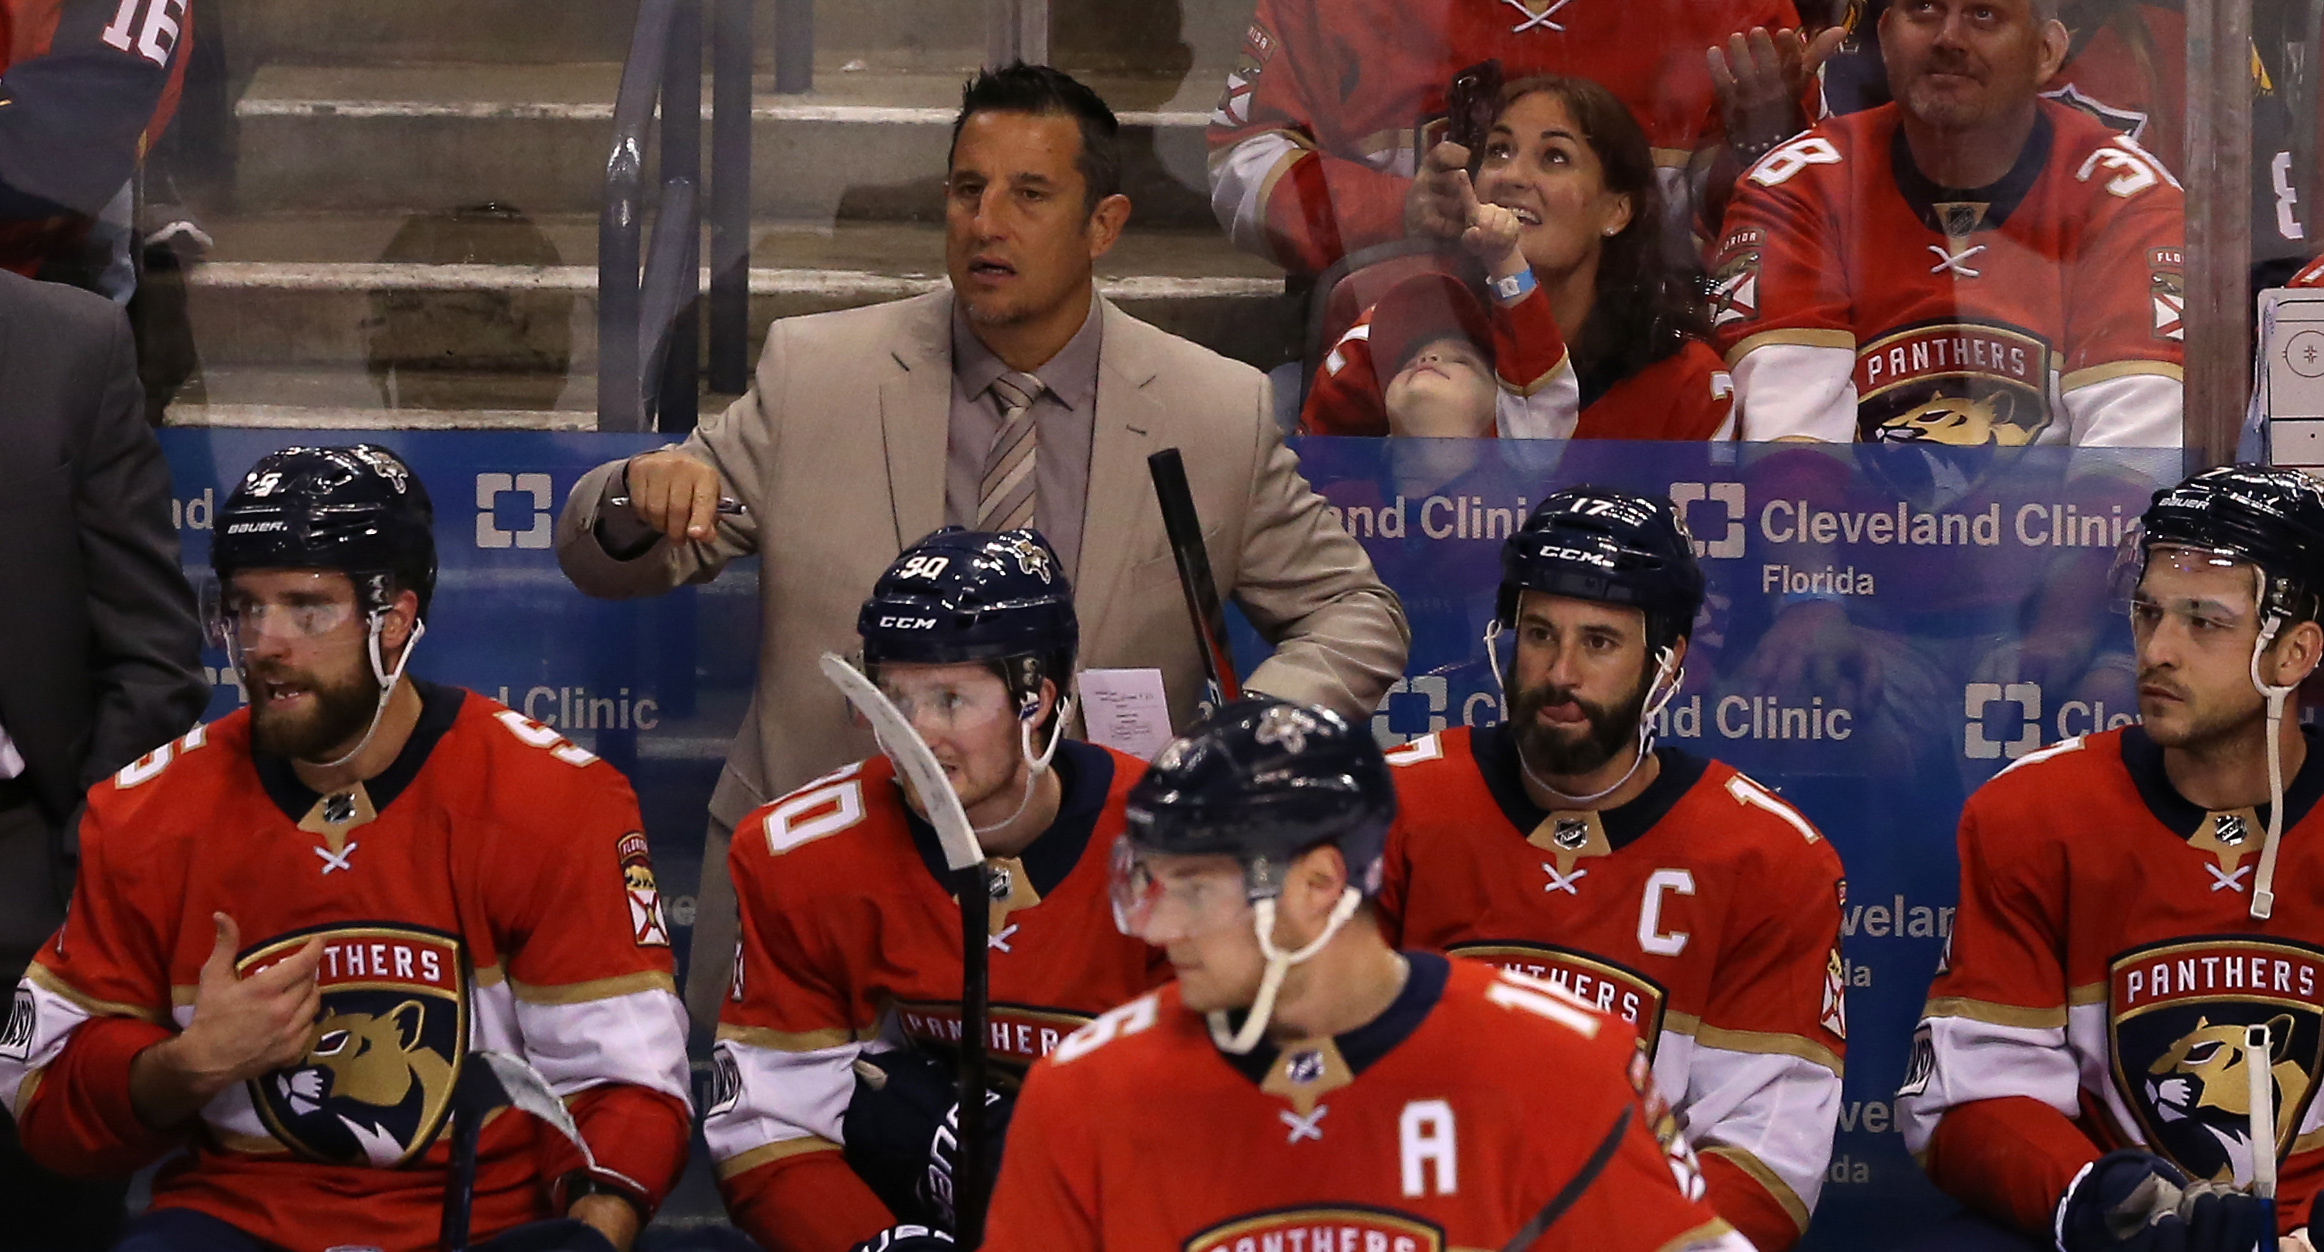 Mar 24, 2018; Sunrise, FL, USA; Florida Panthers head coach Bob Boughner in the second period of a game against the Arizona Coyotes at BB&T Center.